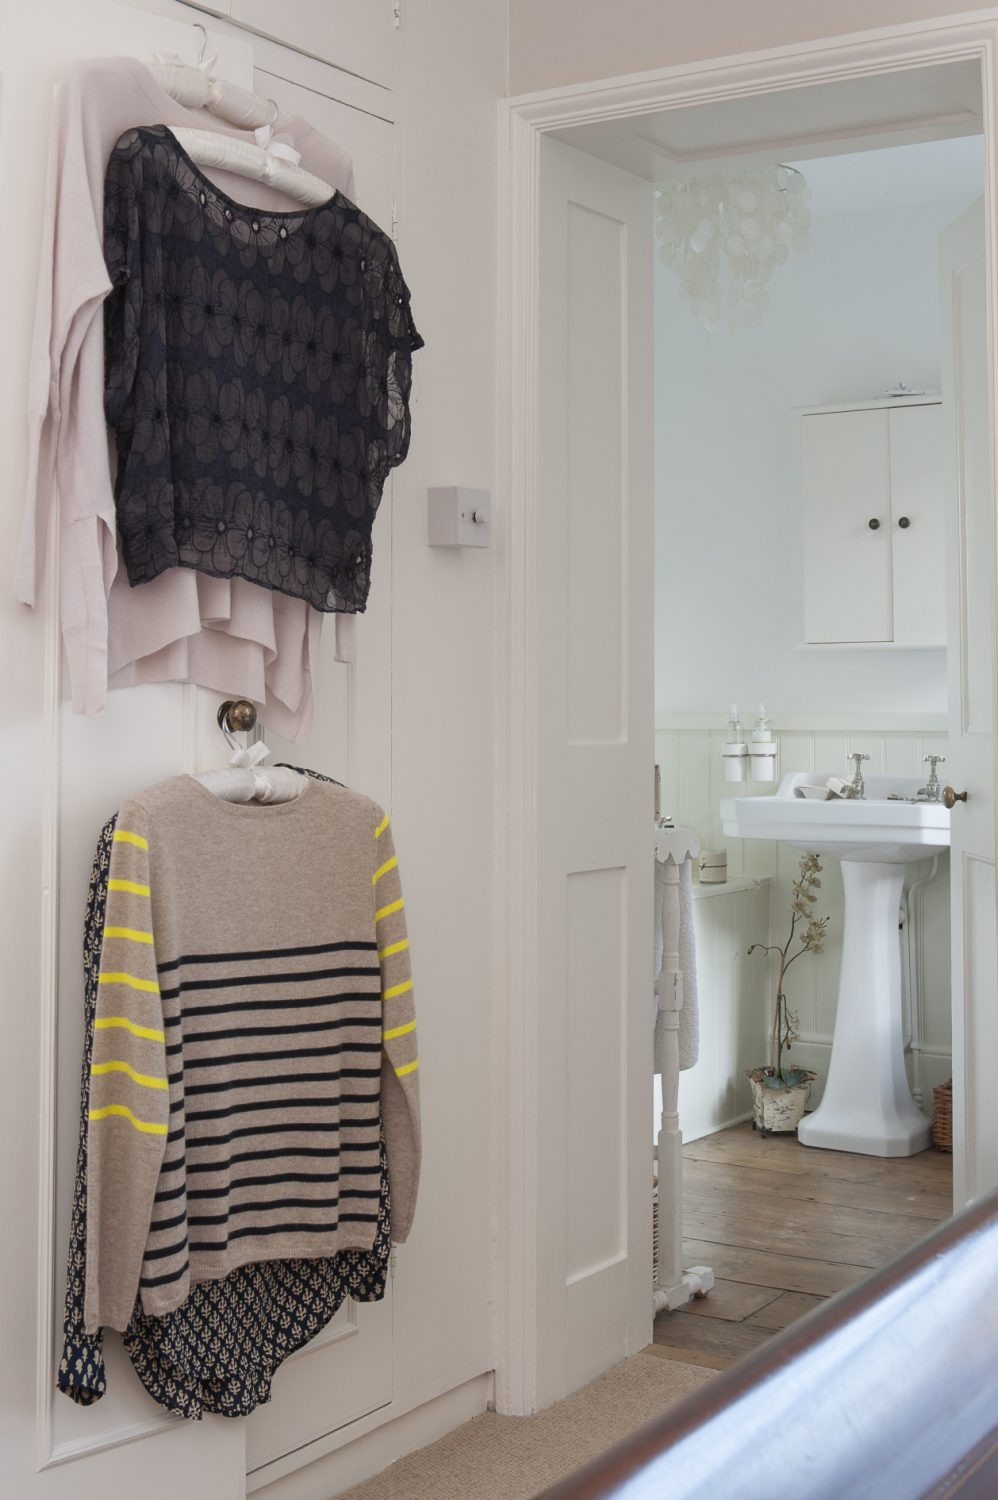 The master bedroom en suite. On a cupboard door hang examples of the clothing offered by Hall & Co in Otford